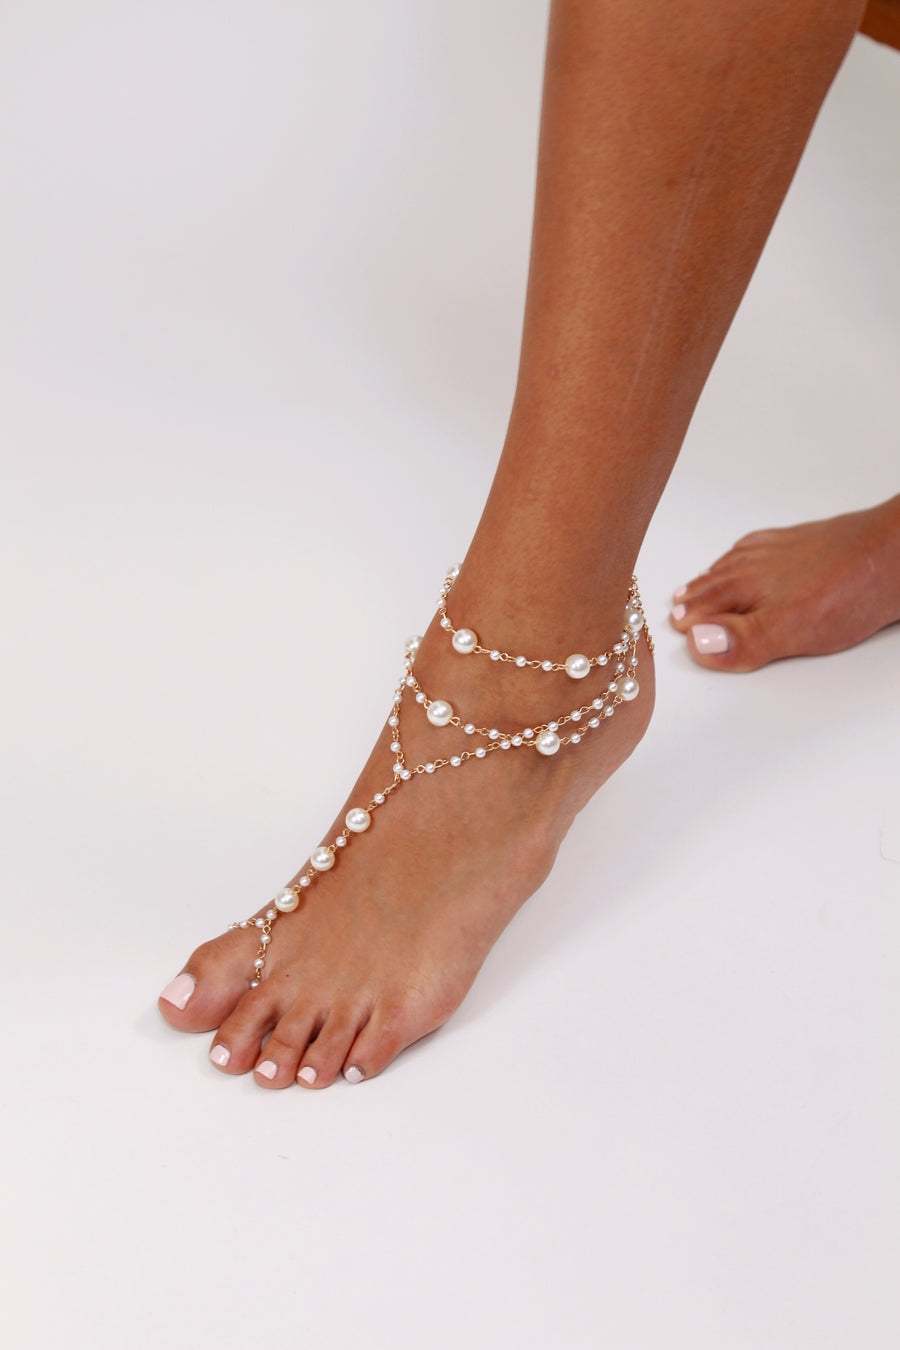 Barefoot Bridal Sandal with Pearls - The Beach Bride by Chic Parisien, a destination for beach weddings, bachelorettes and honeymoons